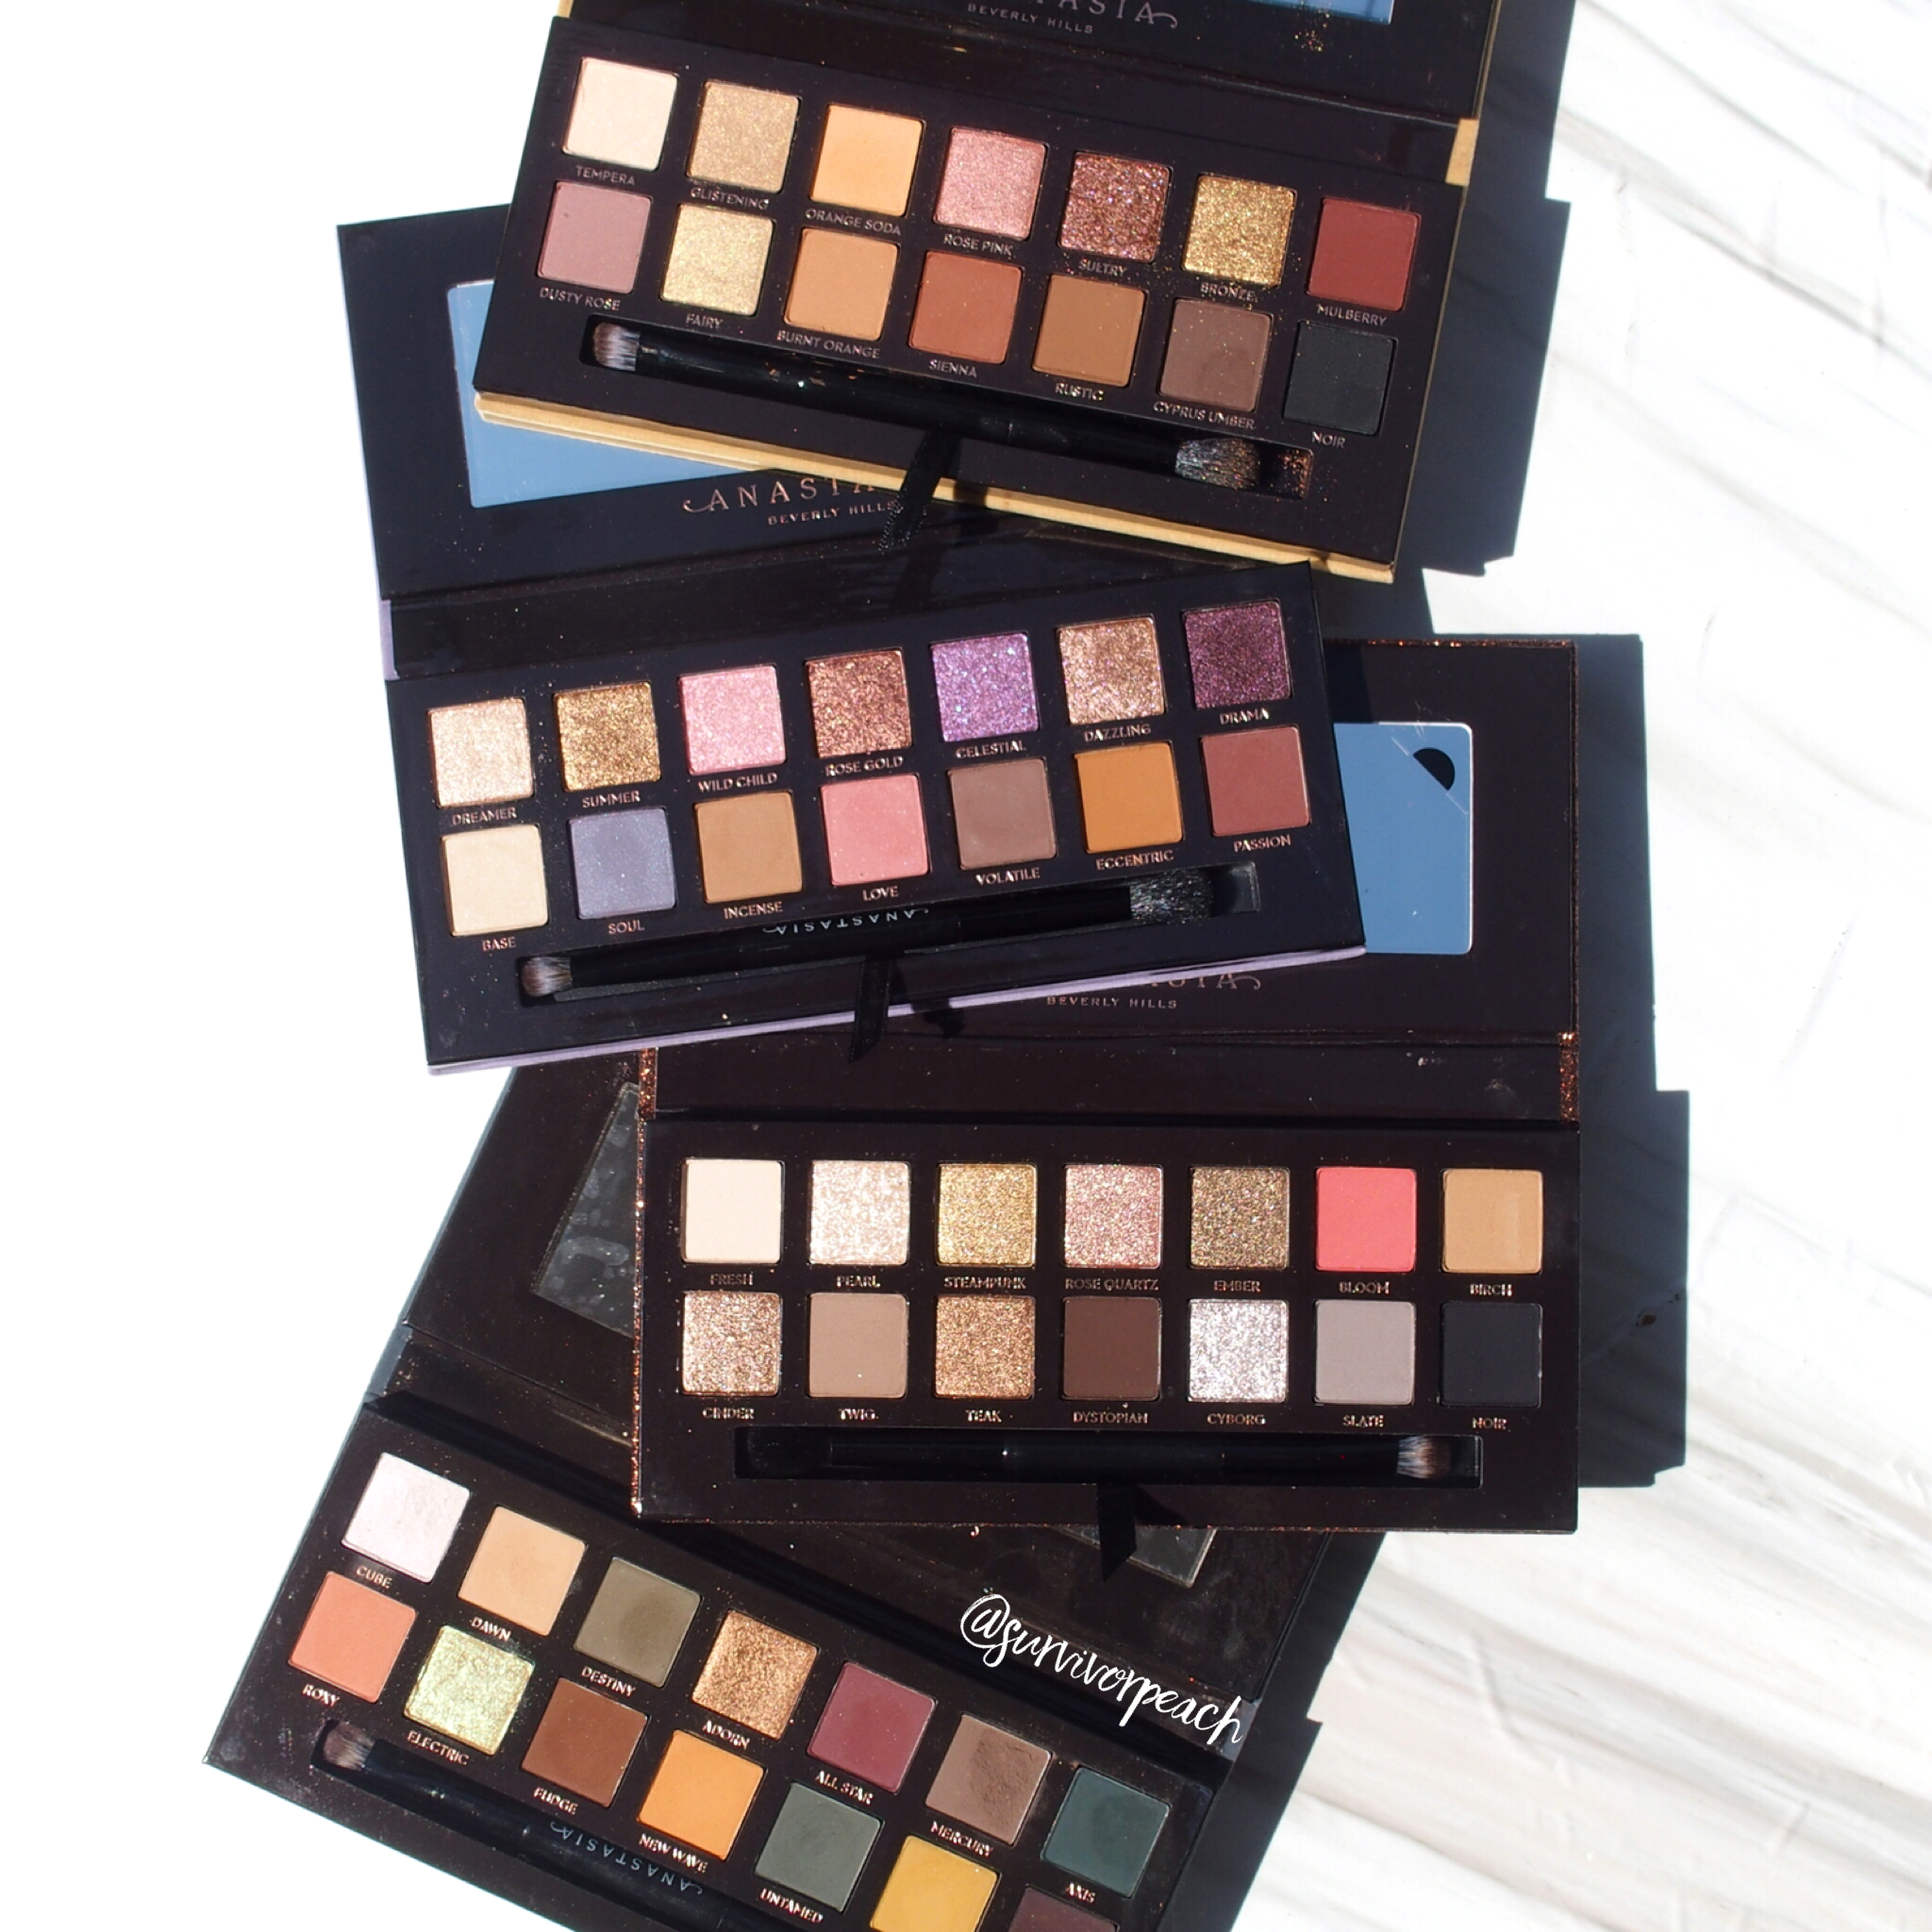 Anastasia Beverly Hills eyeshadow palettes - Sultry, Norvina, Soft Glam, and Subculture.